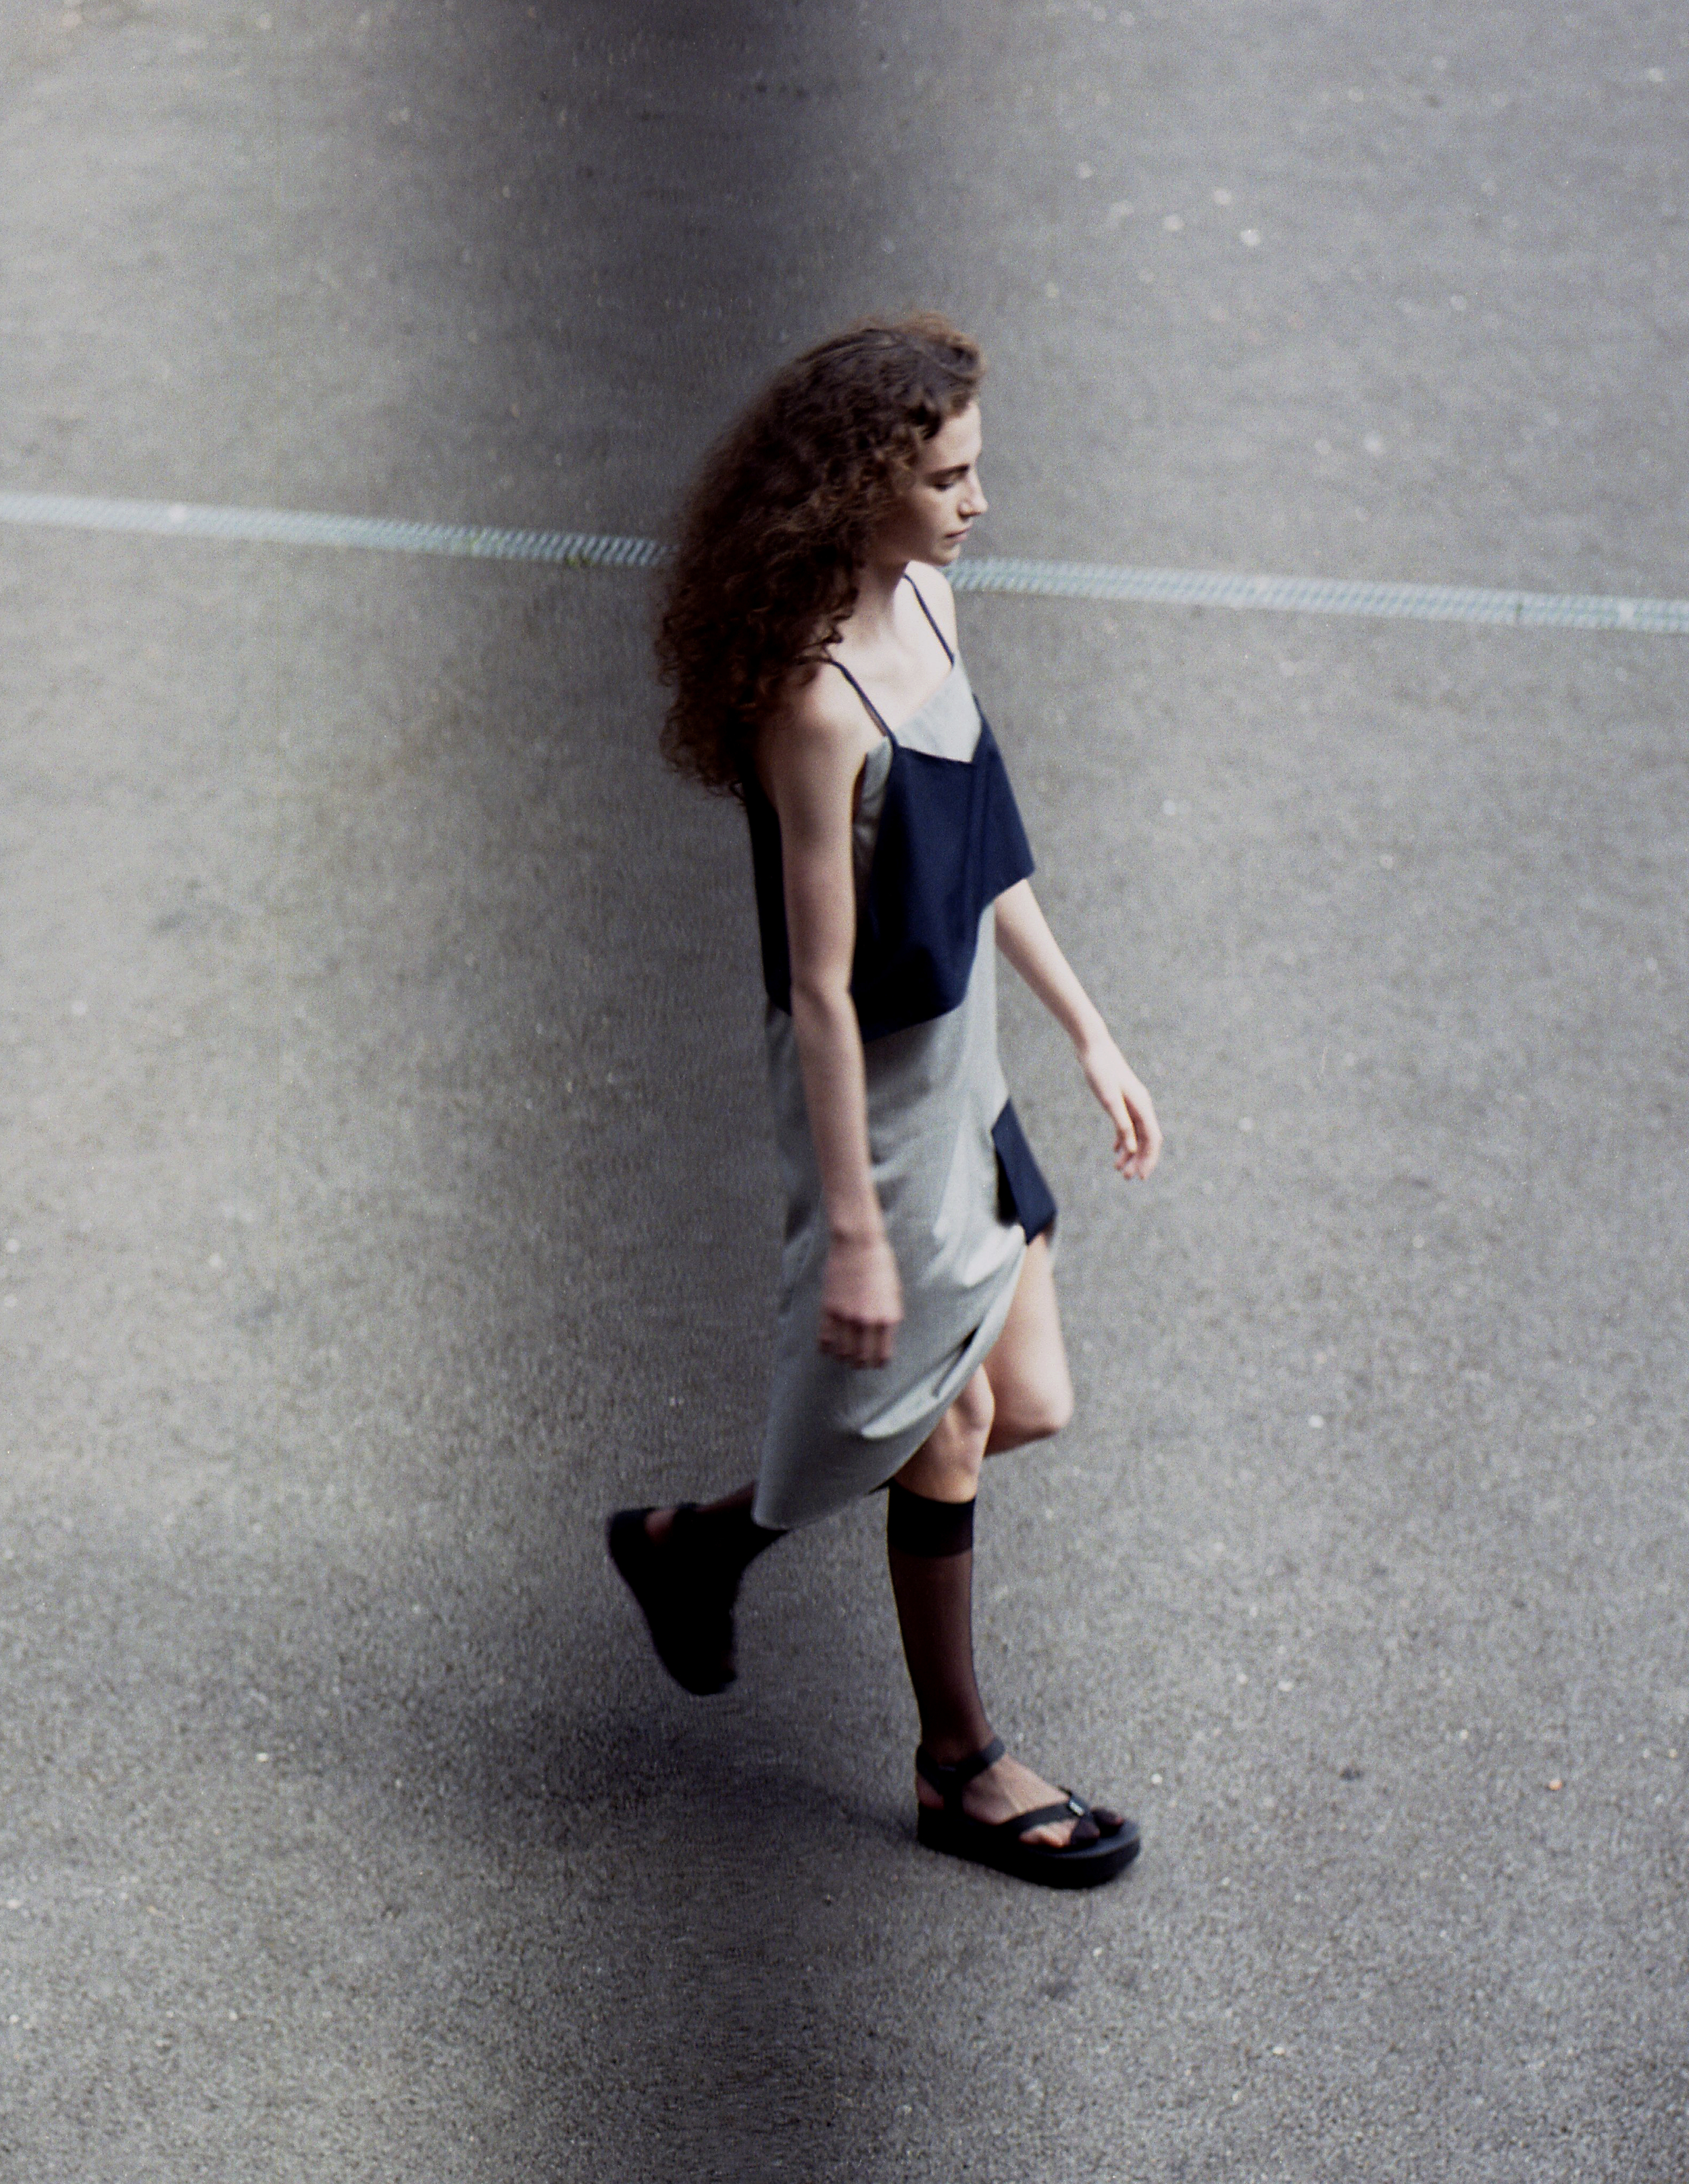 Isabella Wears Eyelet Dress by Jacquemus, Socks by Falke, Flatform Shoes by Teva